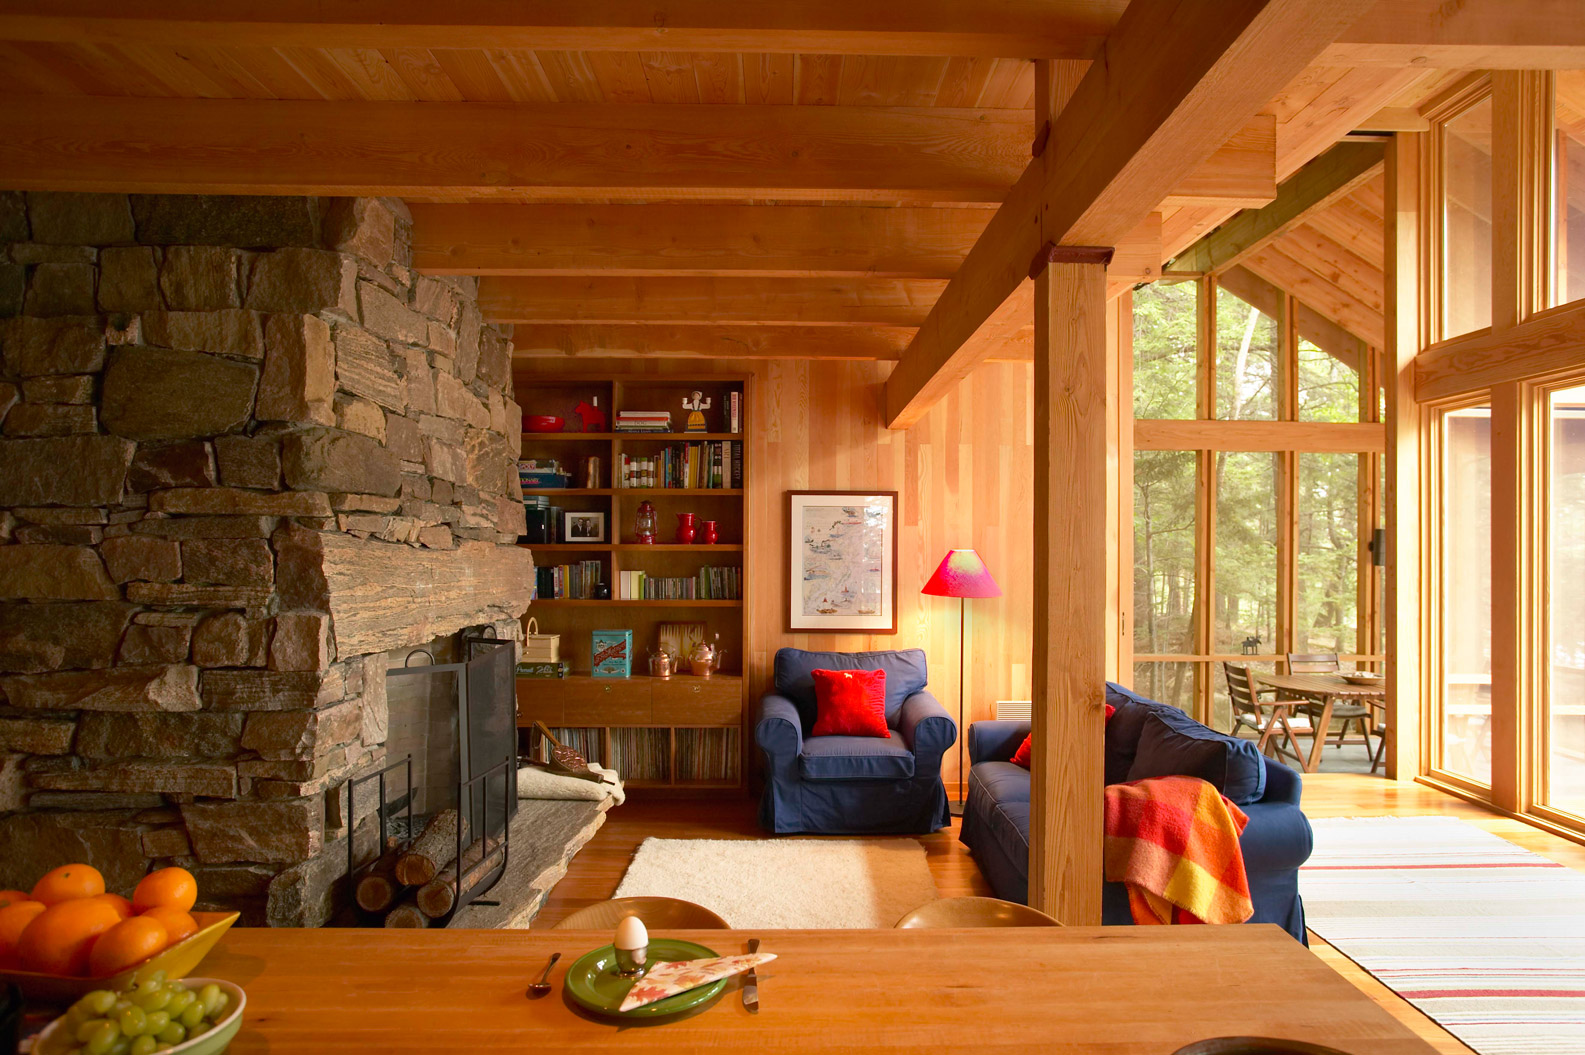 Timber-framed living room in Muskoka cottage with rustic granite fireplace and built-in bookshelves